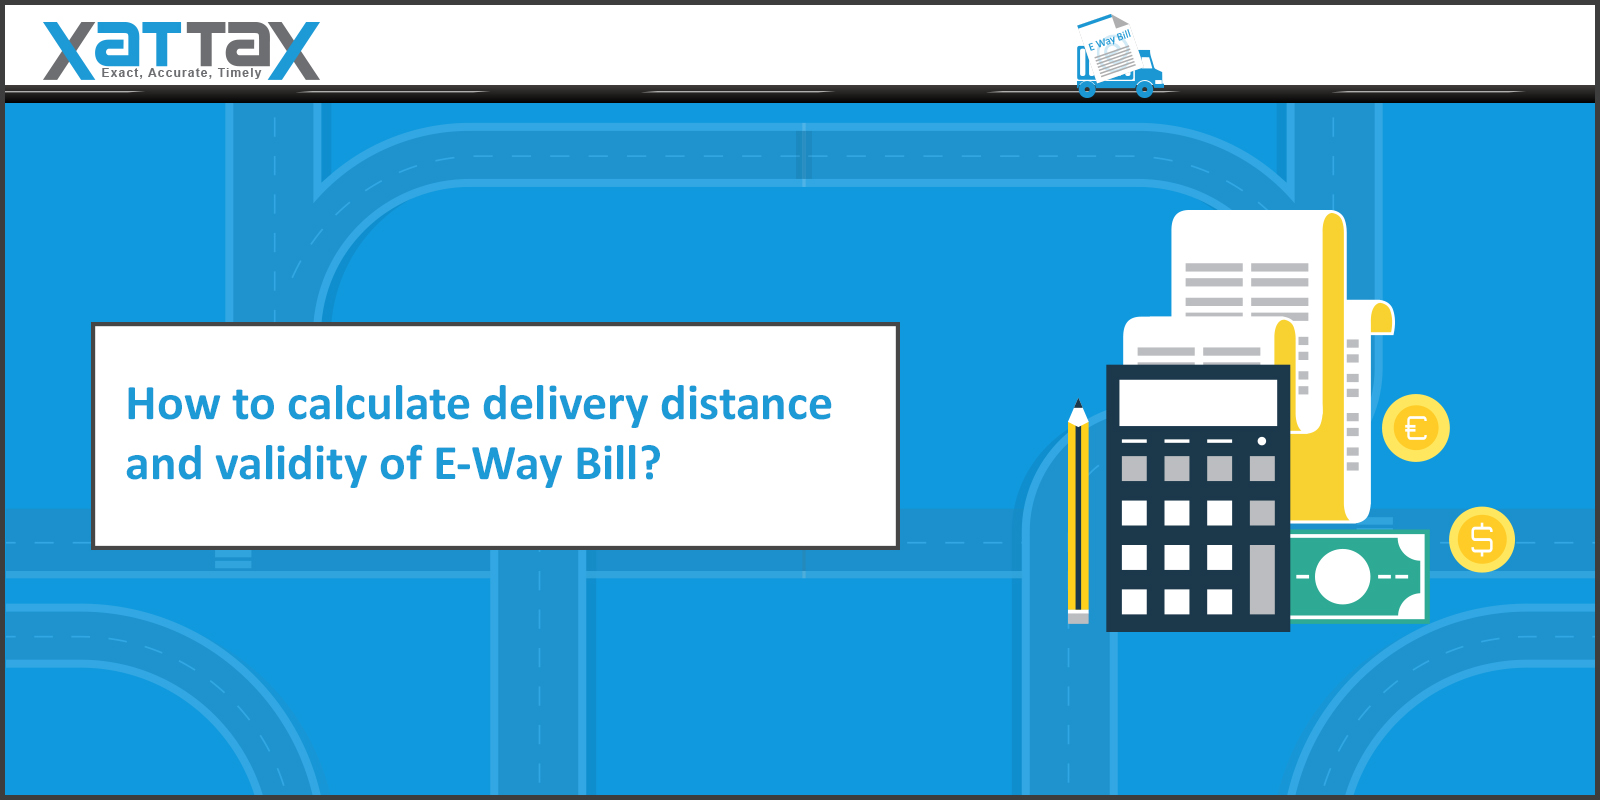 Validity of E-way Bill